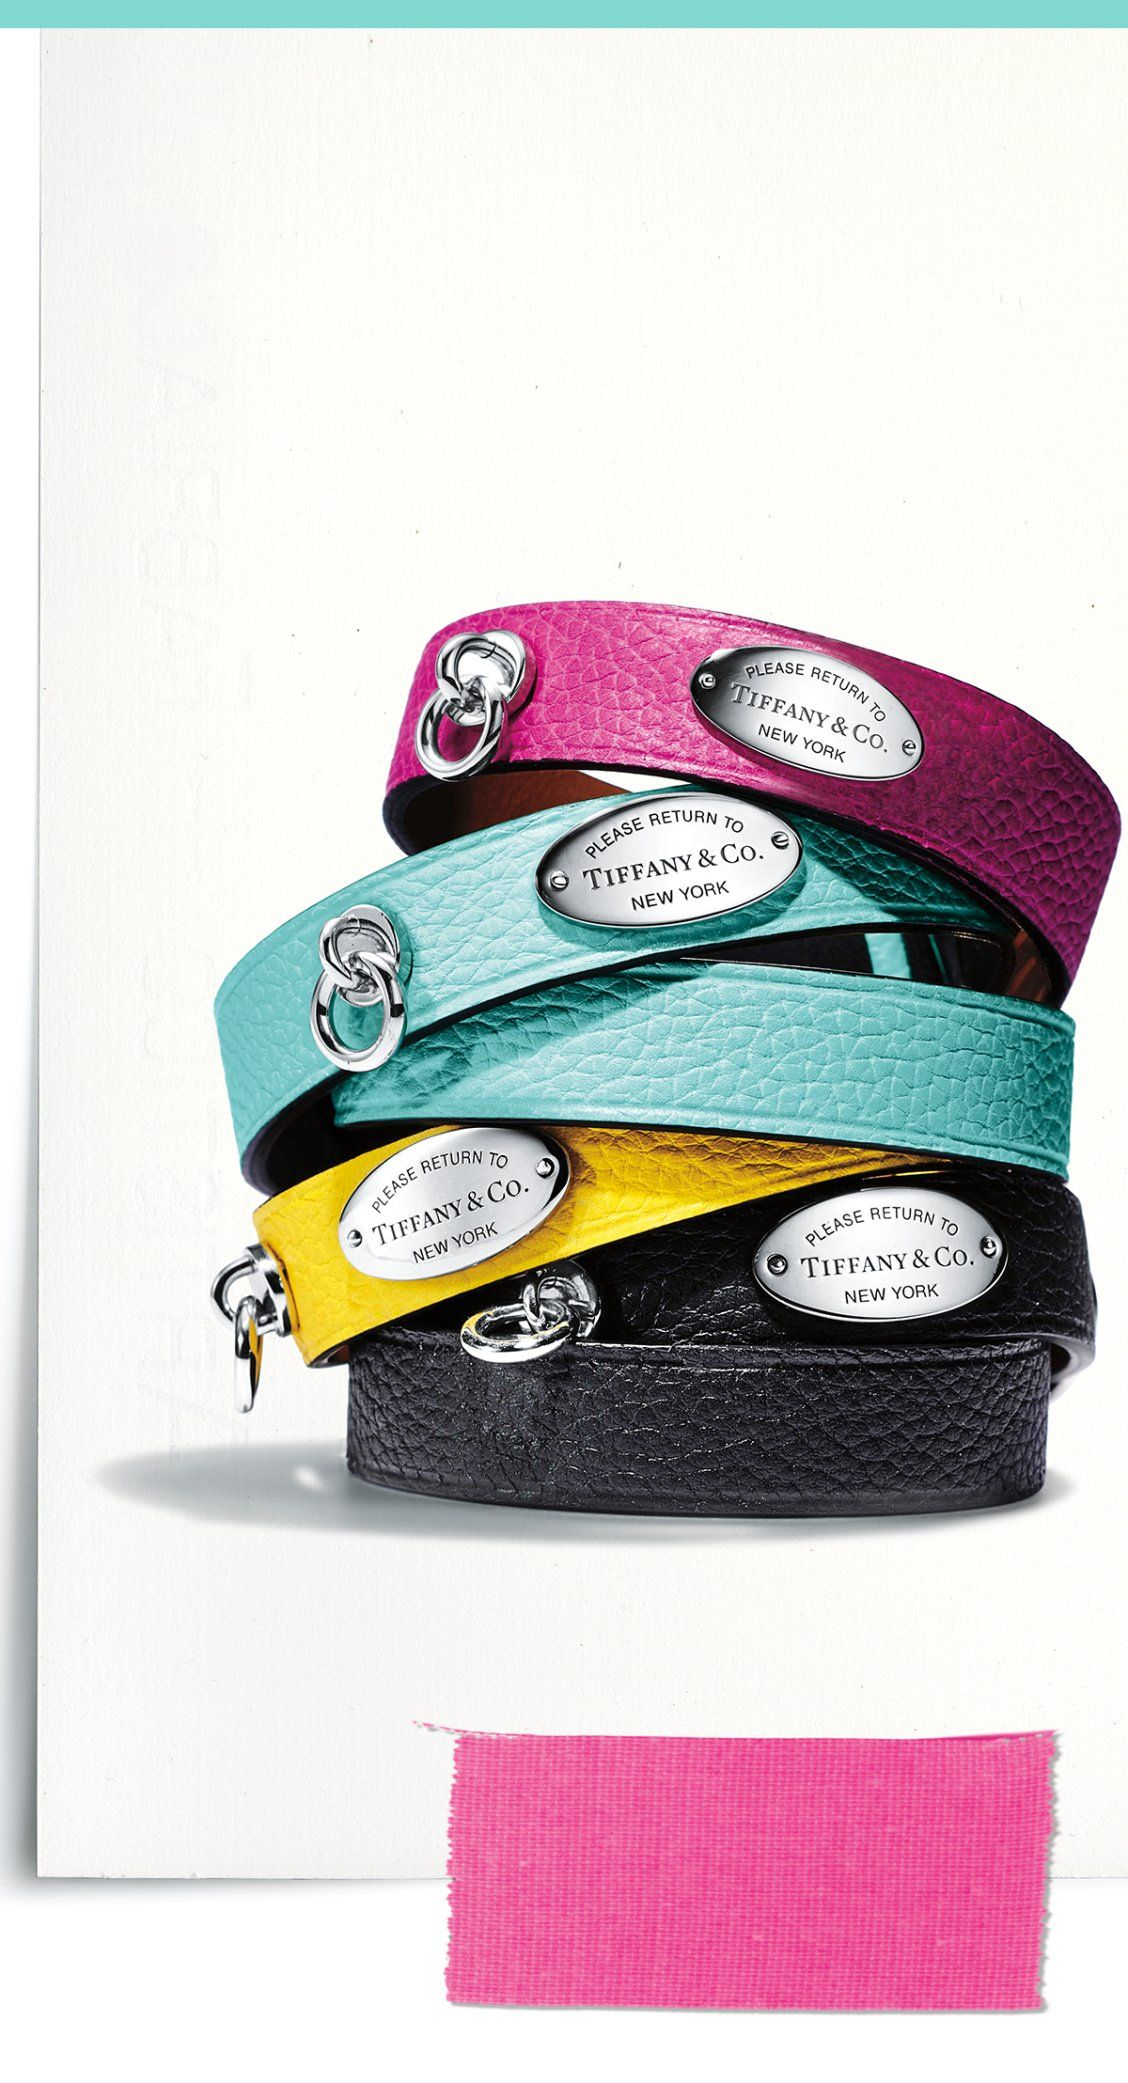 39d0c090a An iconic Return to Tiffany leather wrap bracelet makes a bold and colorful  statement. #ReturnToTiffany #ATiffanyHoliday #BelieveInDreams #TiffanyAndCo  # ...